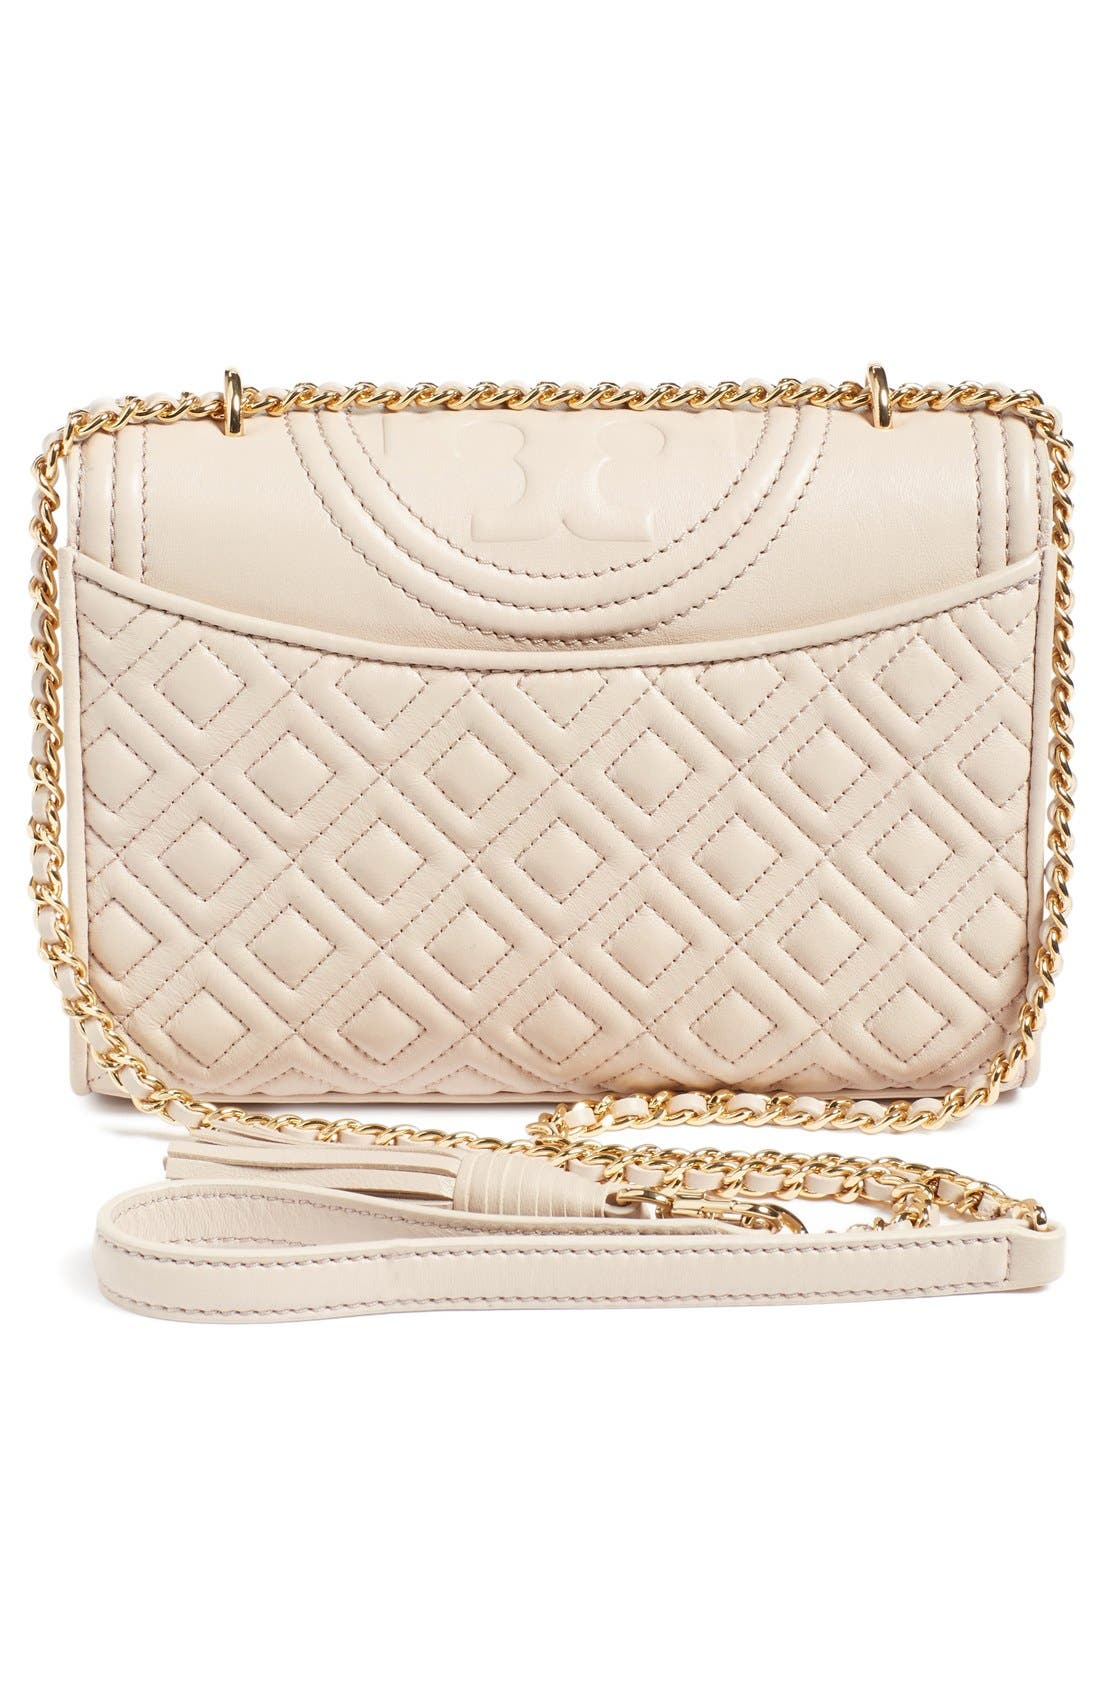 'Small Fleming' Quilted Leather Shoulder Bag,                             Alternate thumbnail 10, color,